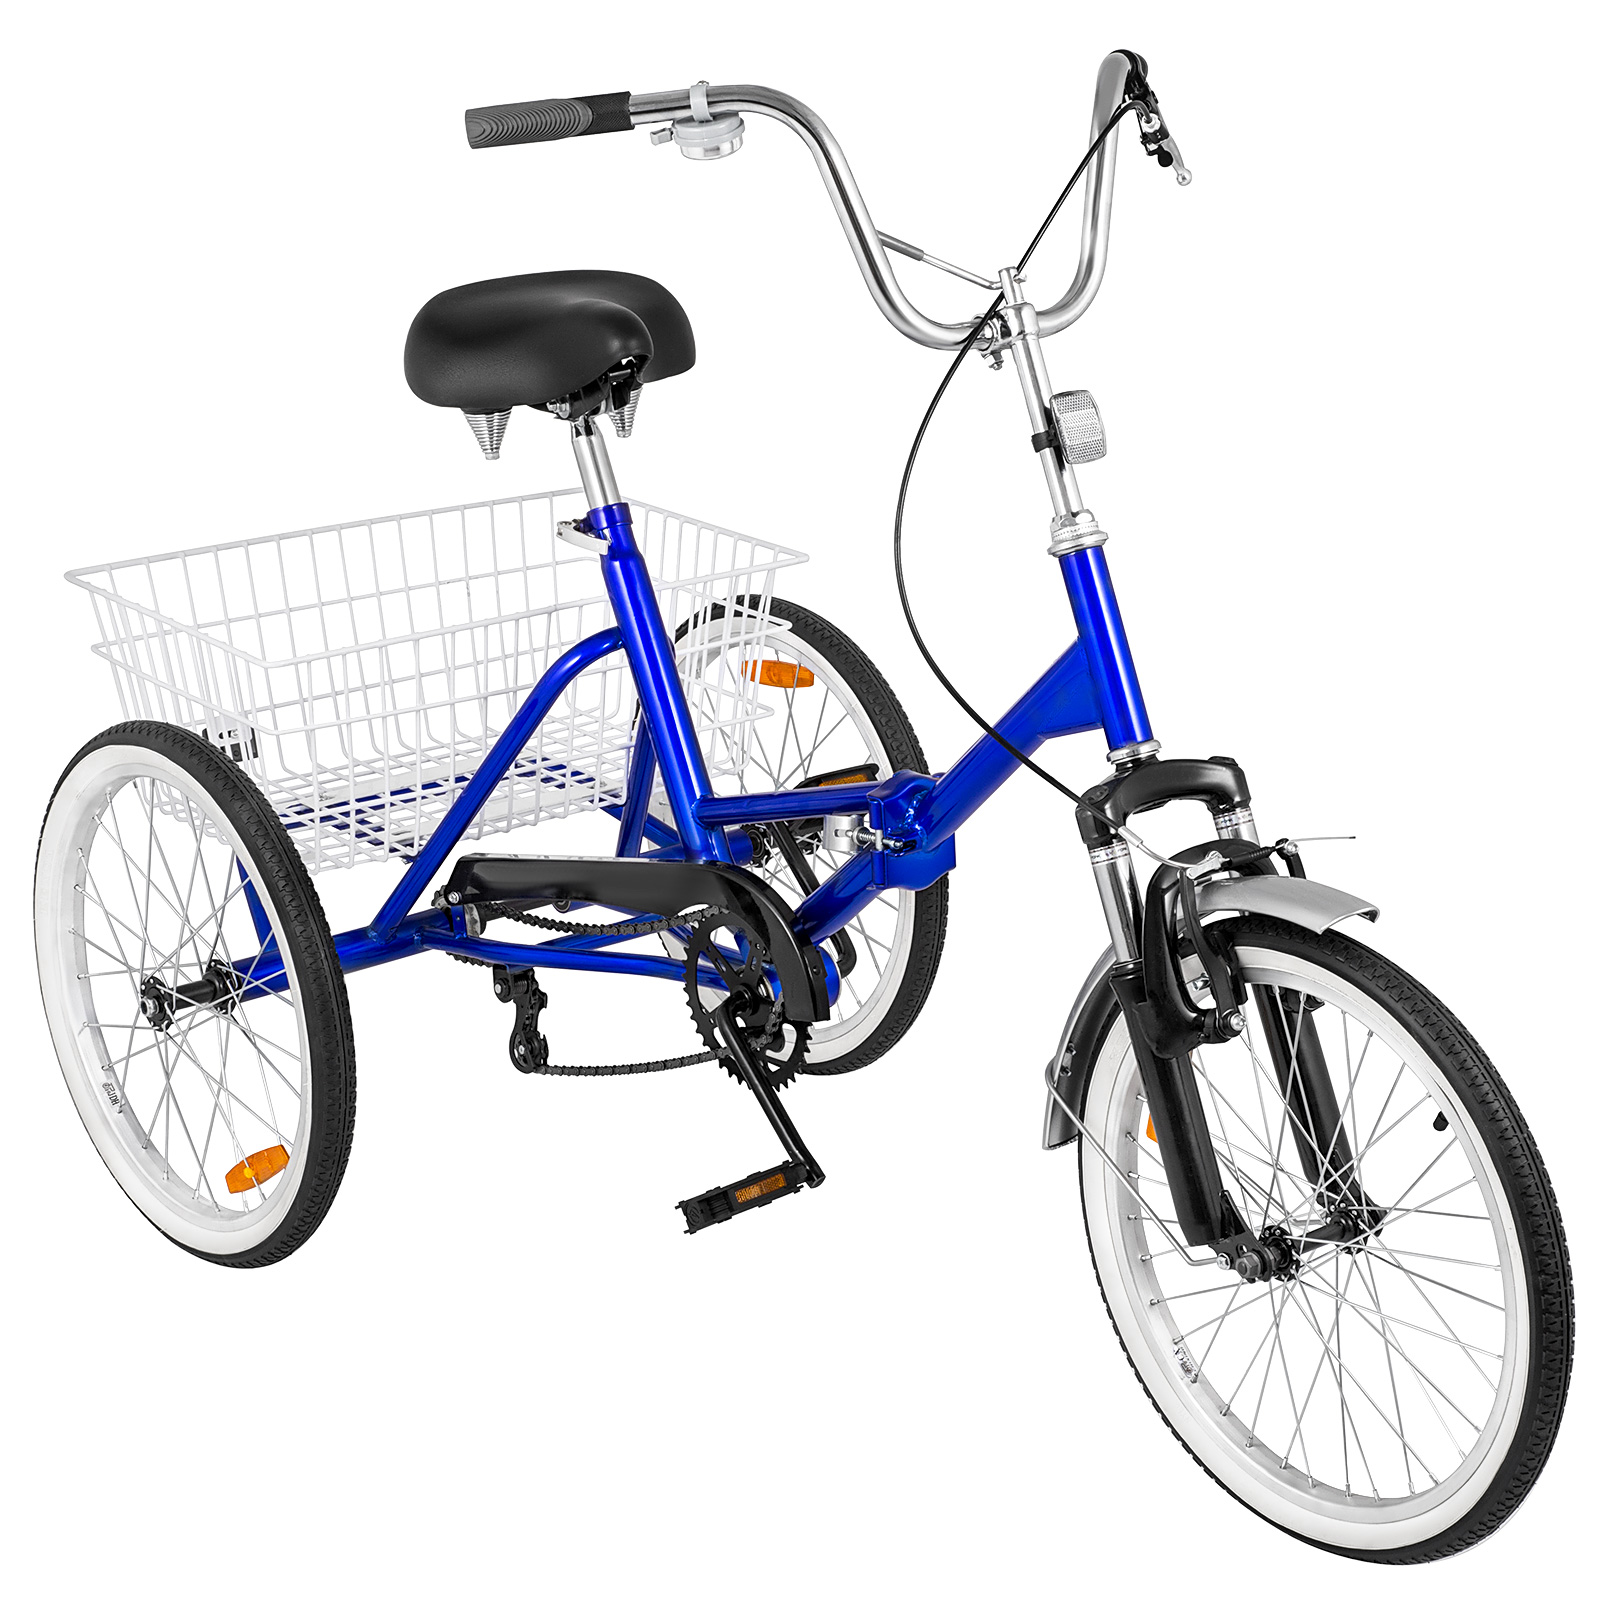 20-24-26-034-Adult-Tricycle-1-7-Speed-3-Wheel-Large-Basket-For-Shopping-Optional thumbnail 57